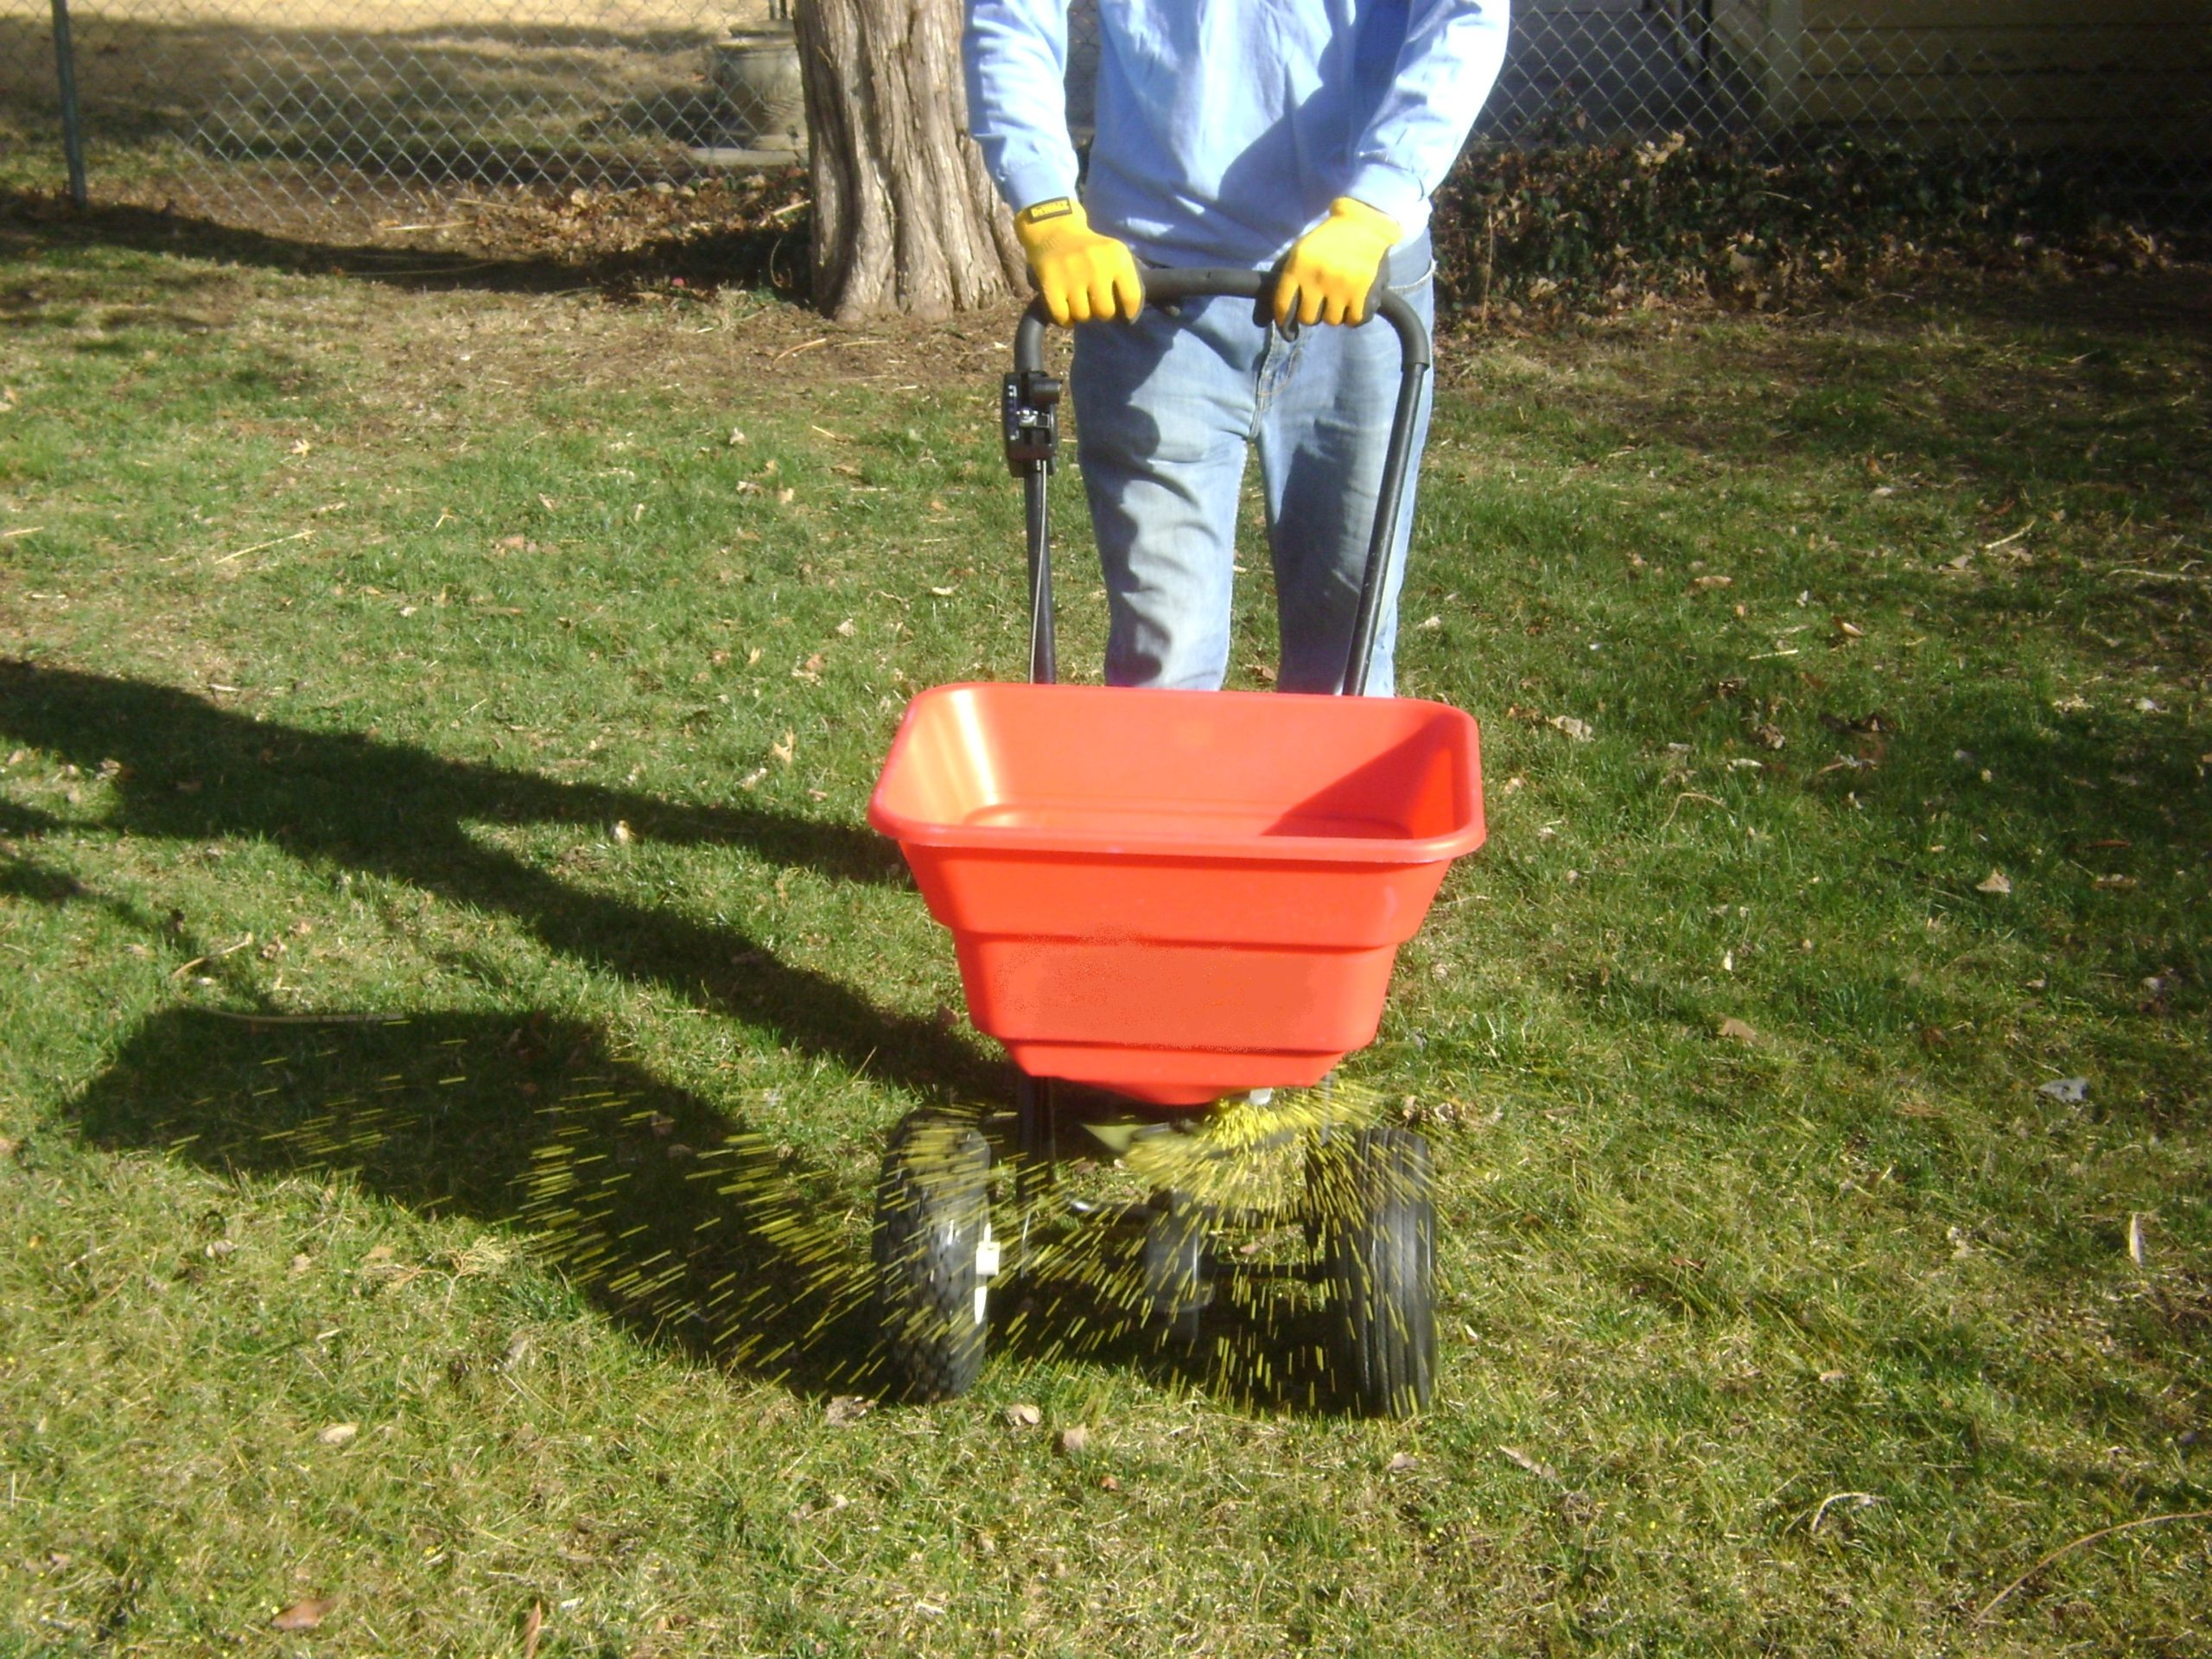 Prairie Village-Lawn-Landscaping-SK-Lawn-Care-Lawn-and-landscaping-Mowing- Fertilizer-Weed-Control-Seeding